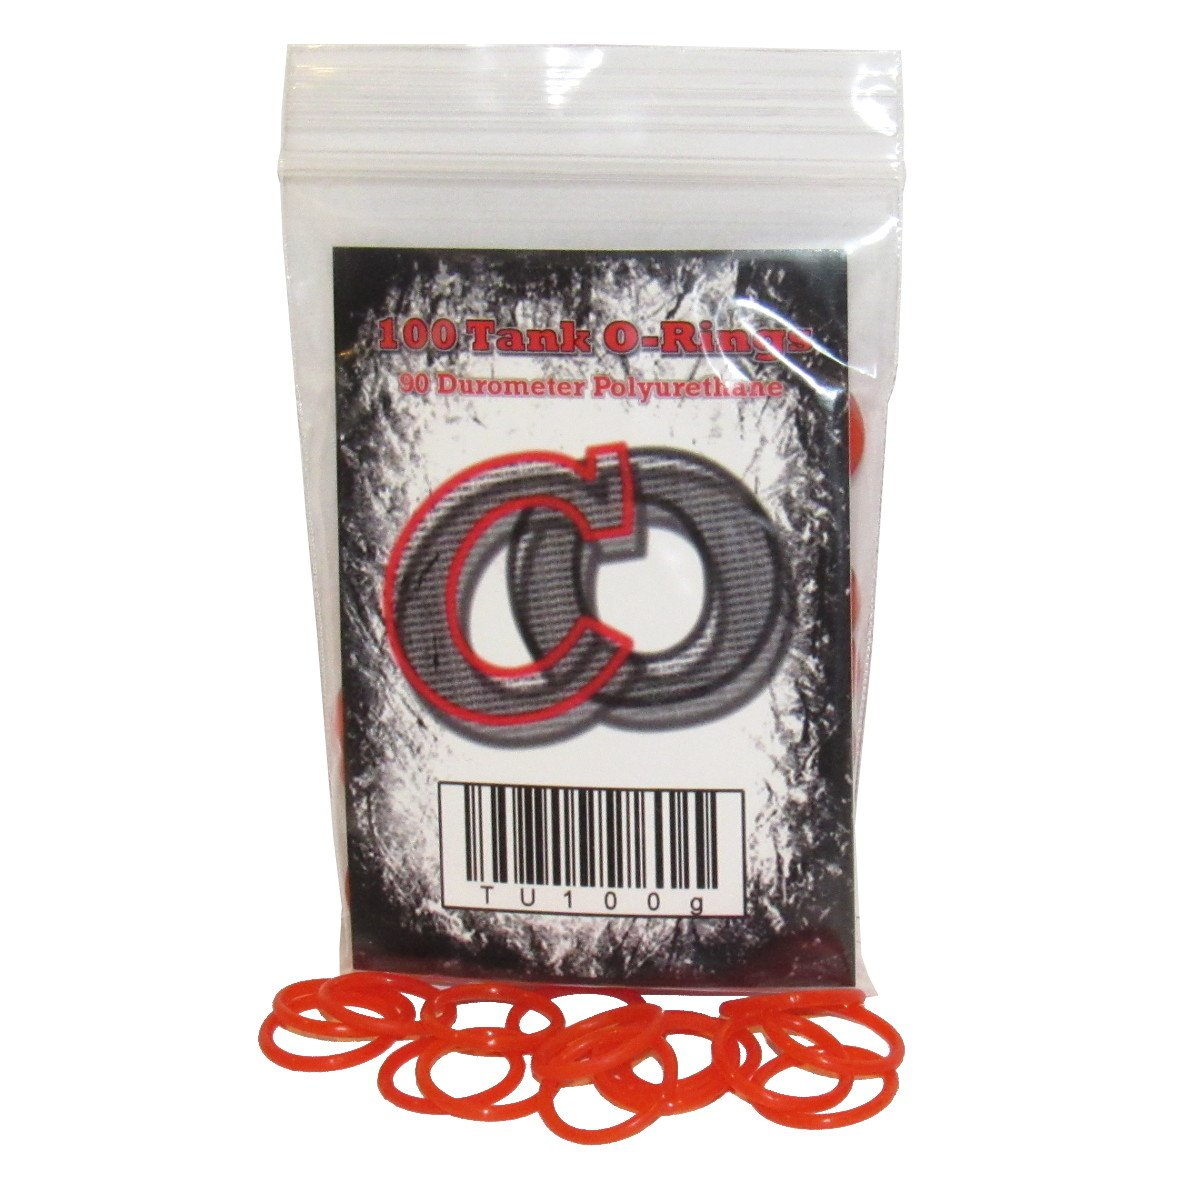 100 Polyurethane CO2 / HPA Tank O-Rings (90 Durometer) [RED] CaptainOring.com TU100g